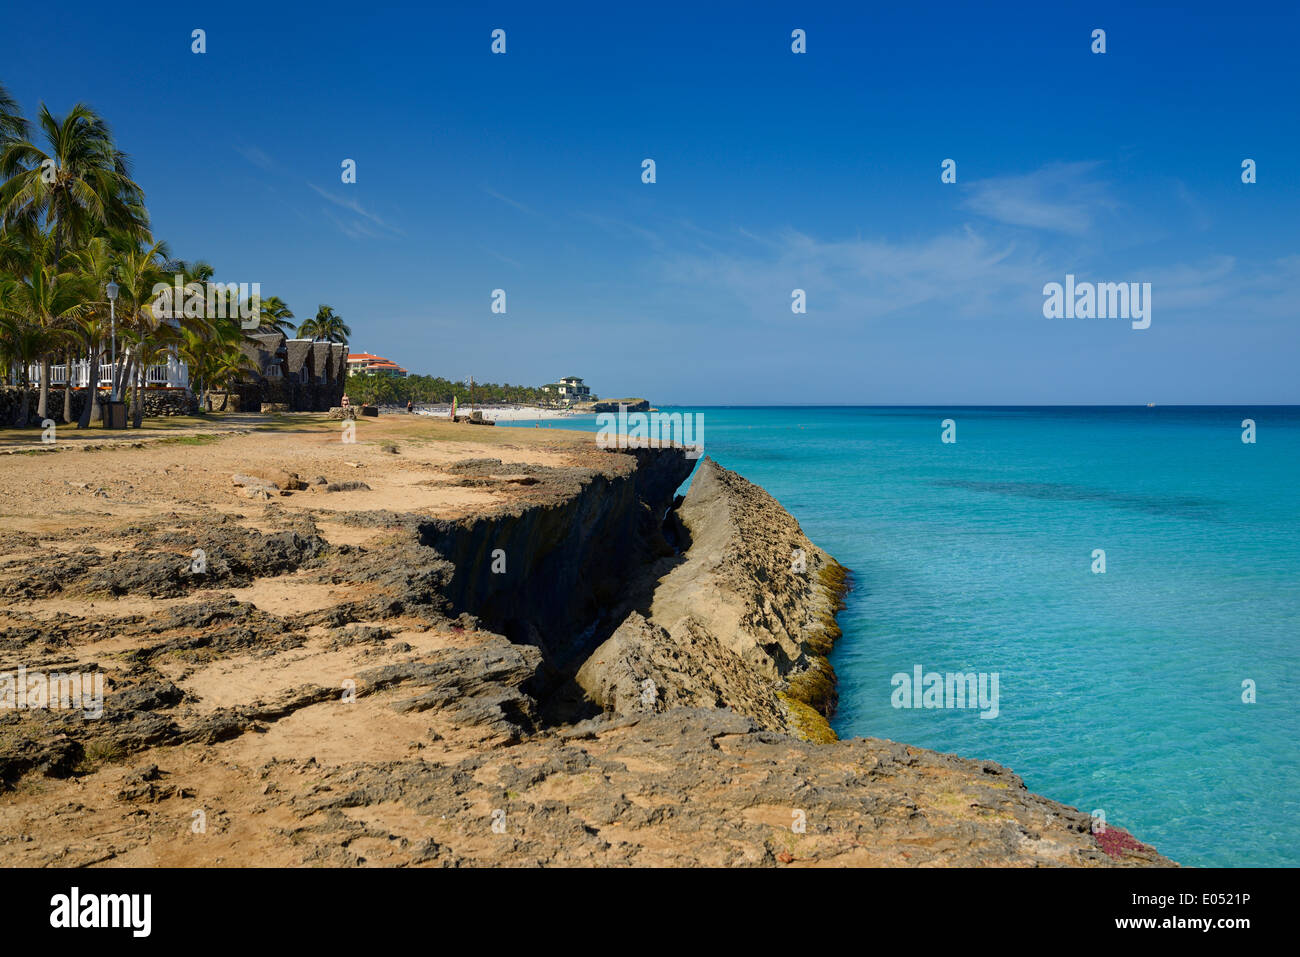 Lava rock shore at Varadero Cuba resort with turquoise ocean  and white sand beach - Stock Image